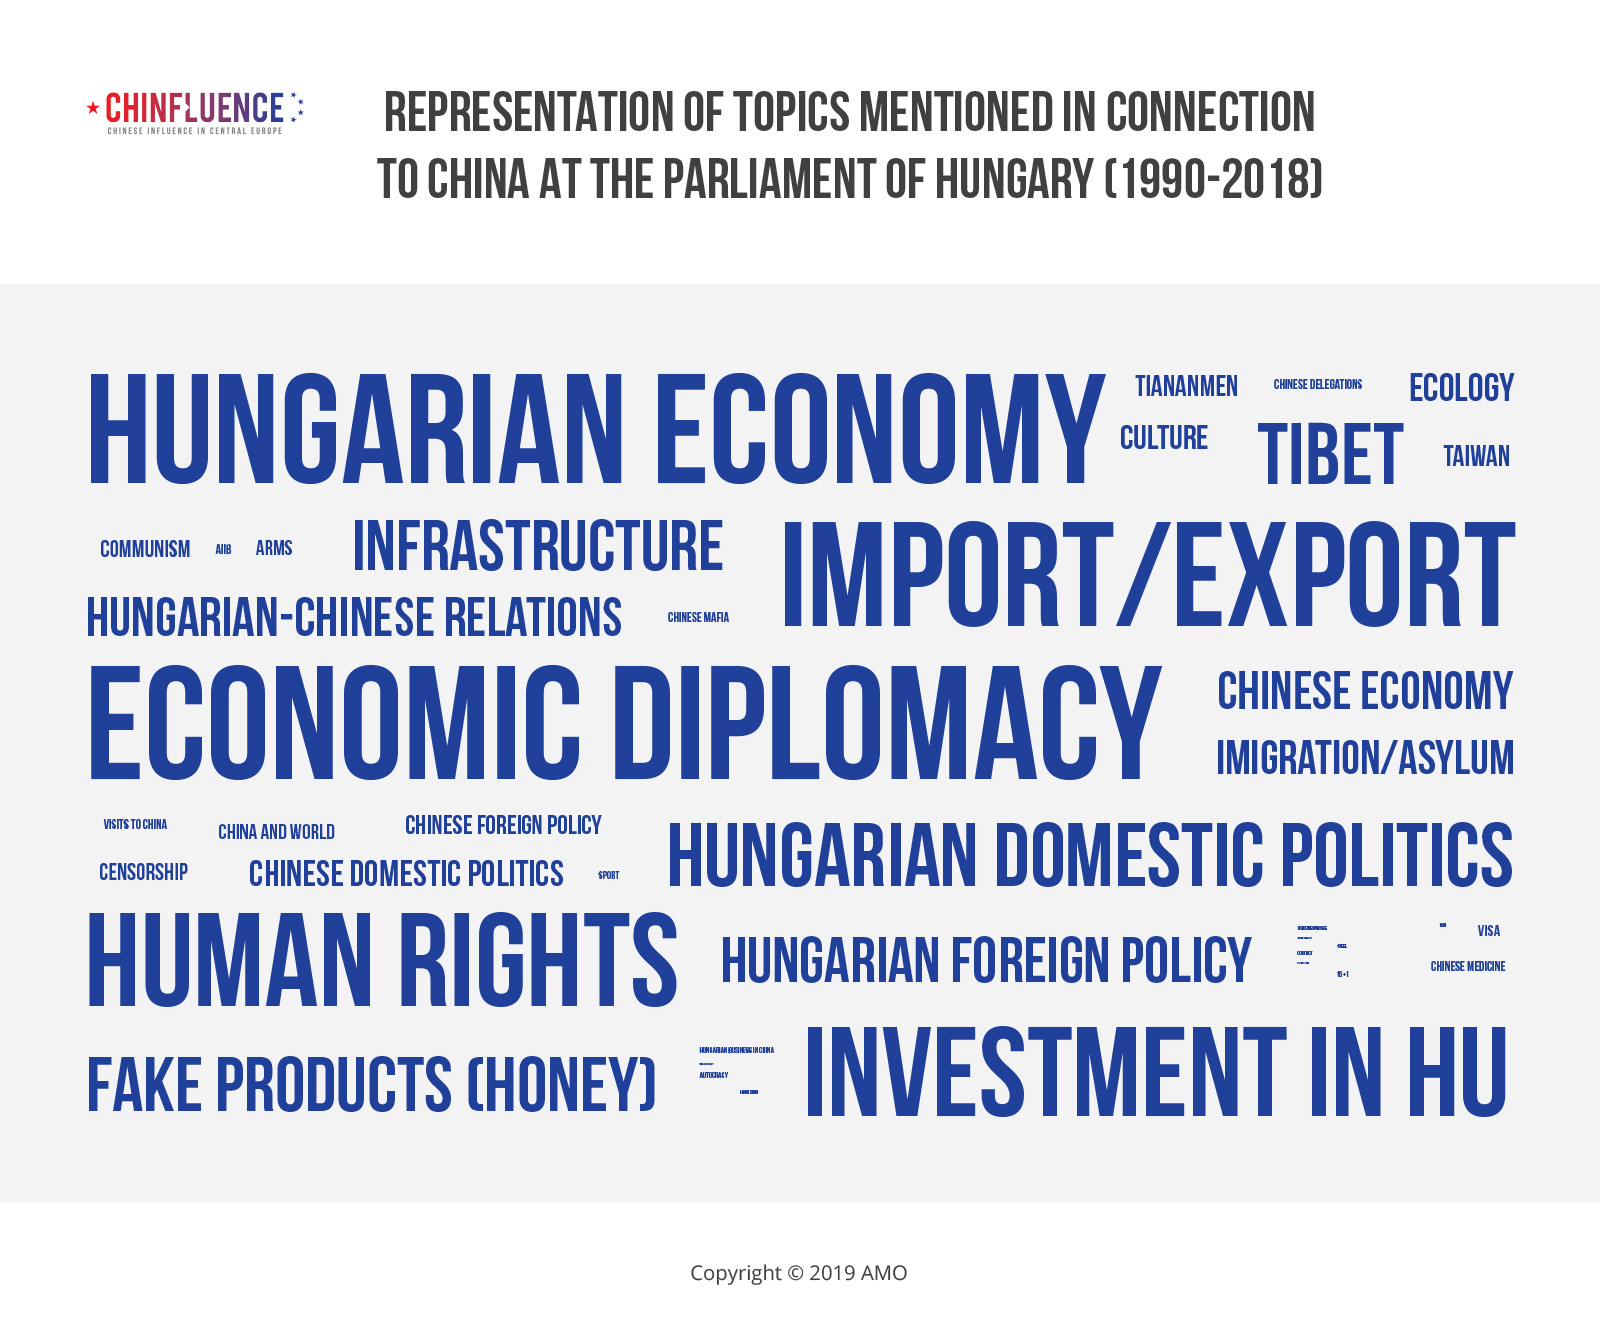 Representation-of-topics-mentioned-in-connection-to-China-at-the-Parliament-of-Hungary-1990-2018